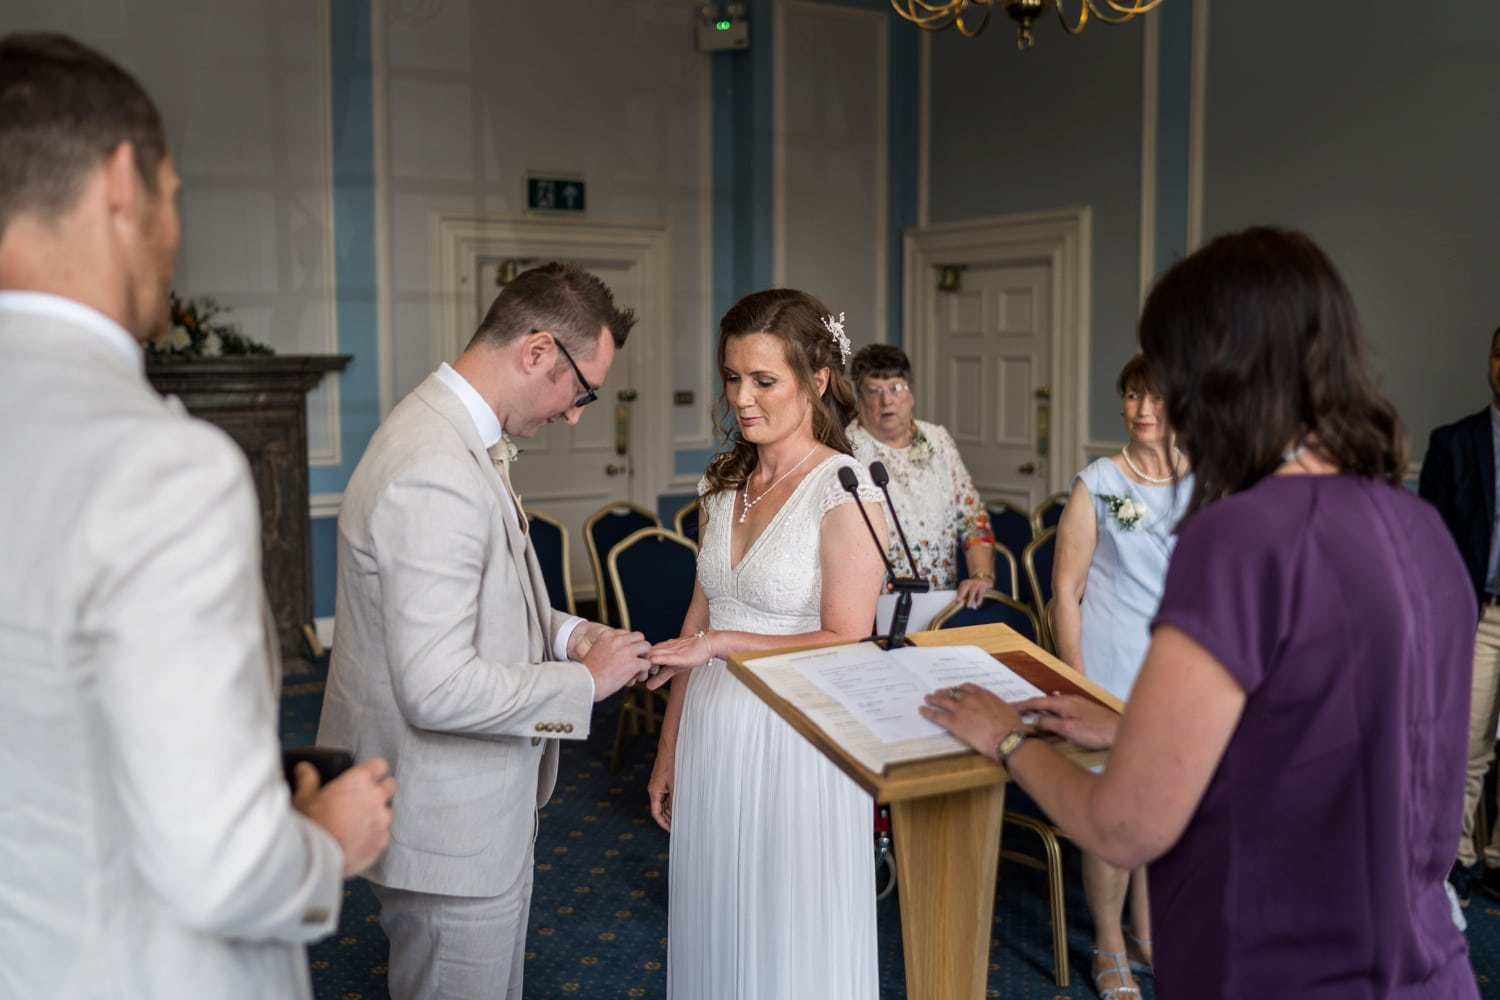 Marriage ceremony at Cardiff City Hall